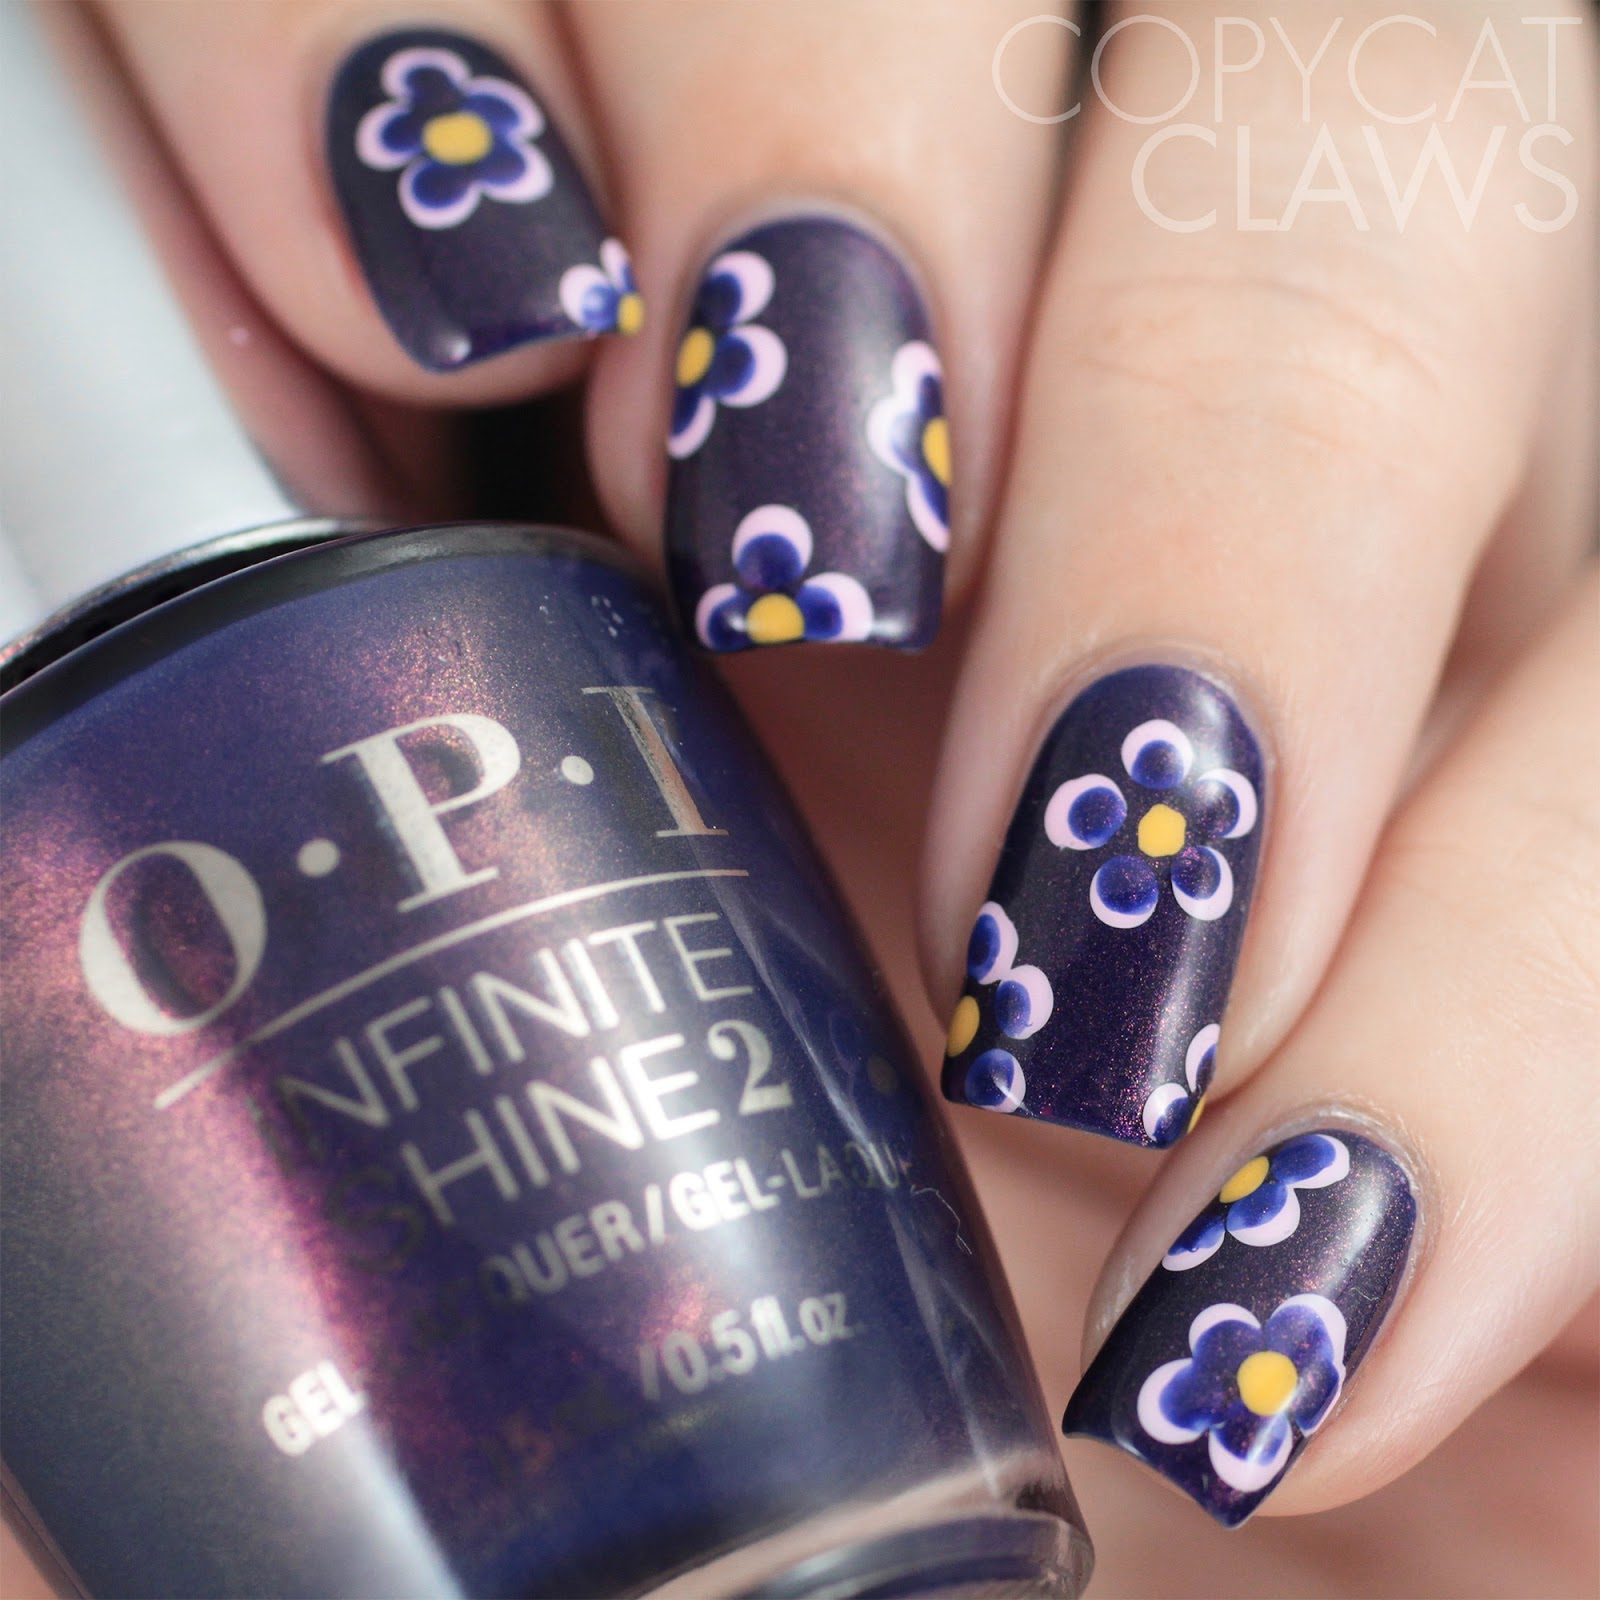 Copycat claws 26 great nail art ideas dotting tools but not i cant believe ive never thought to add that extra dot to dotted flowers before its amazing how much just adding that dot of the base color changes the prinsesfo Gallery